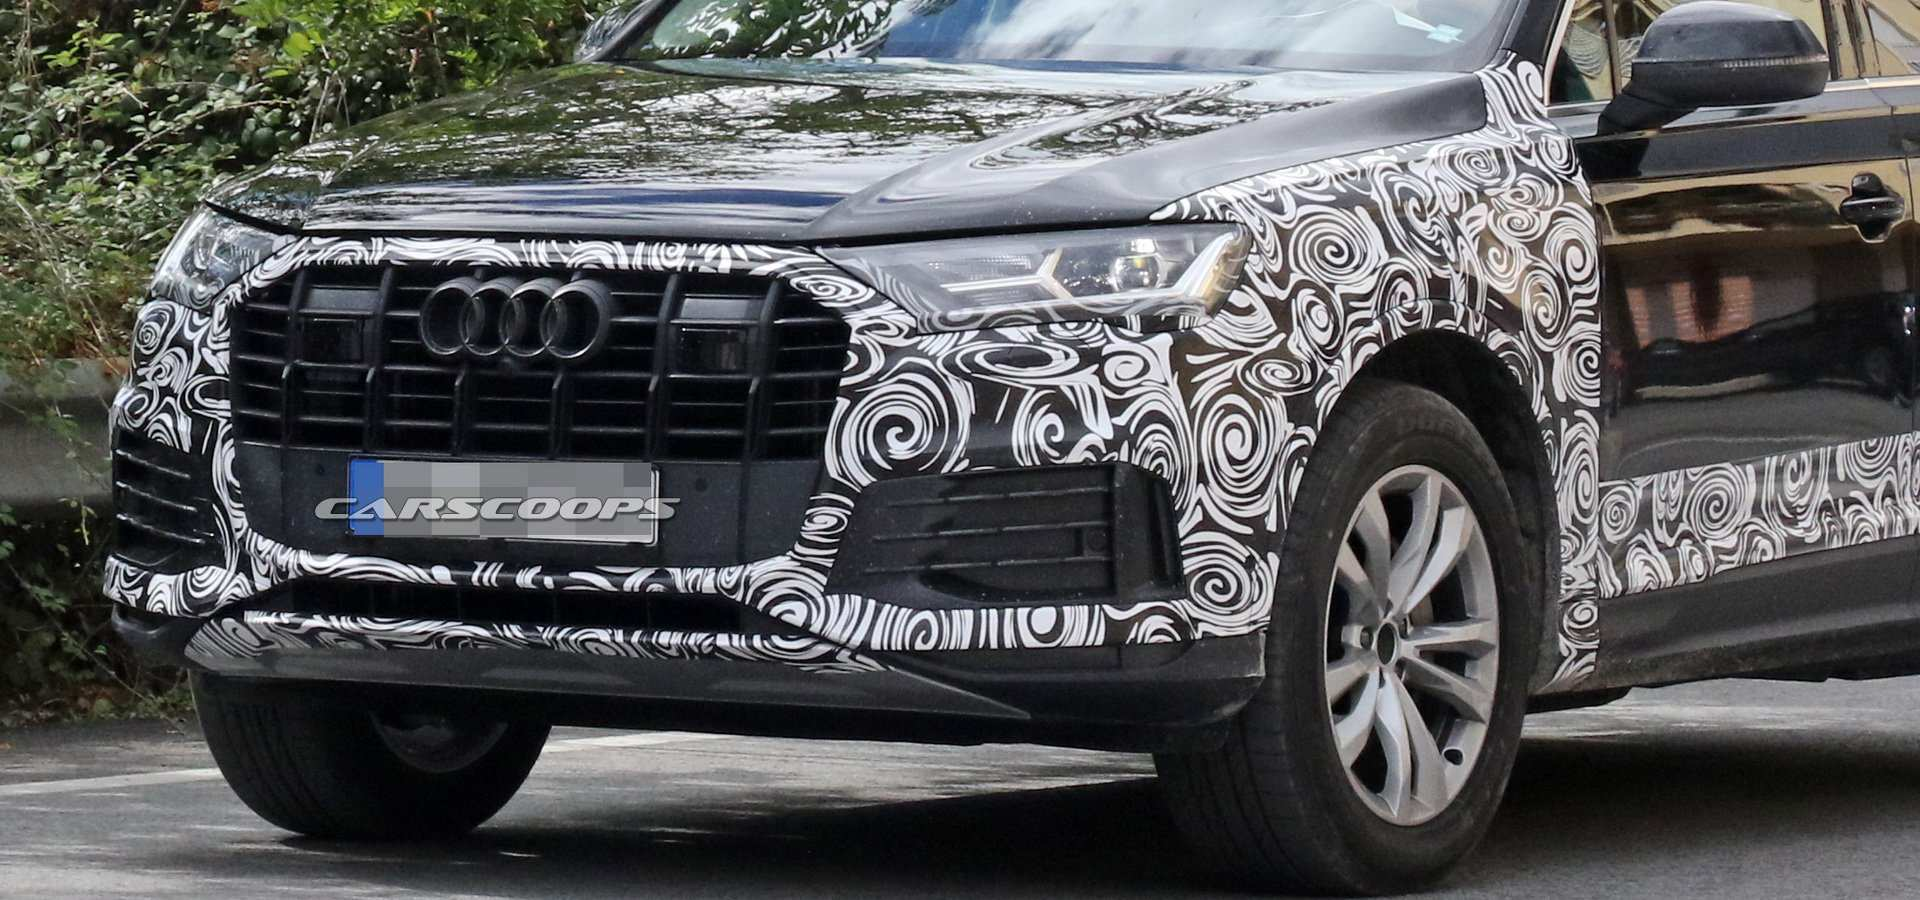 33 All New Audi New Q7 2020 Review